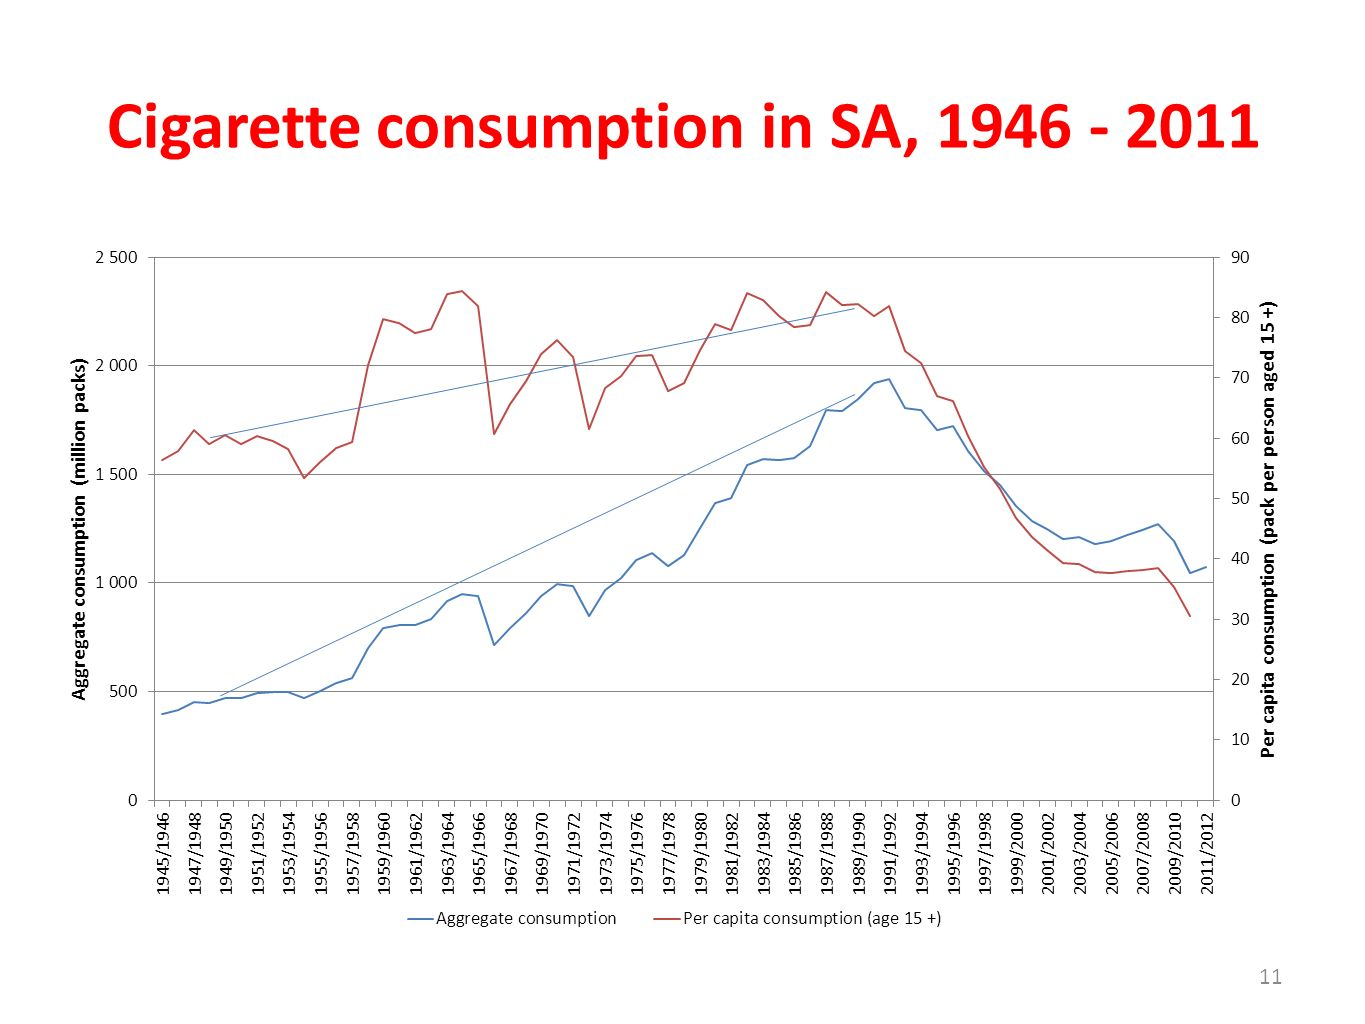 Cigarette consumption in SA, 1946 - 2011